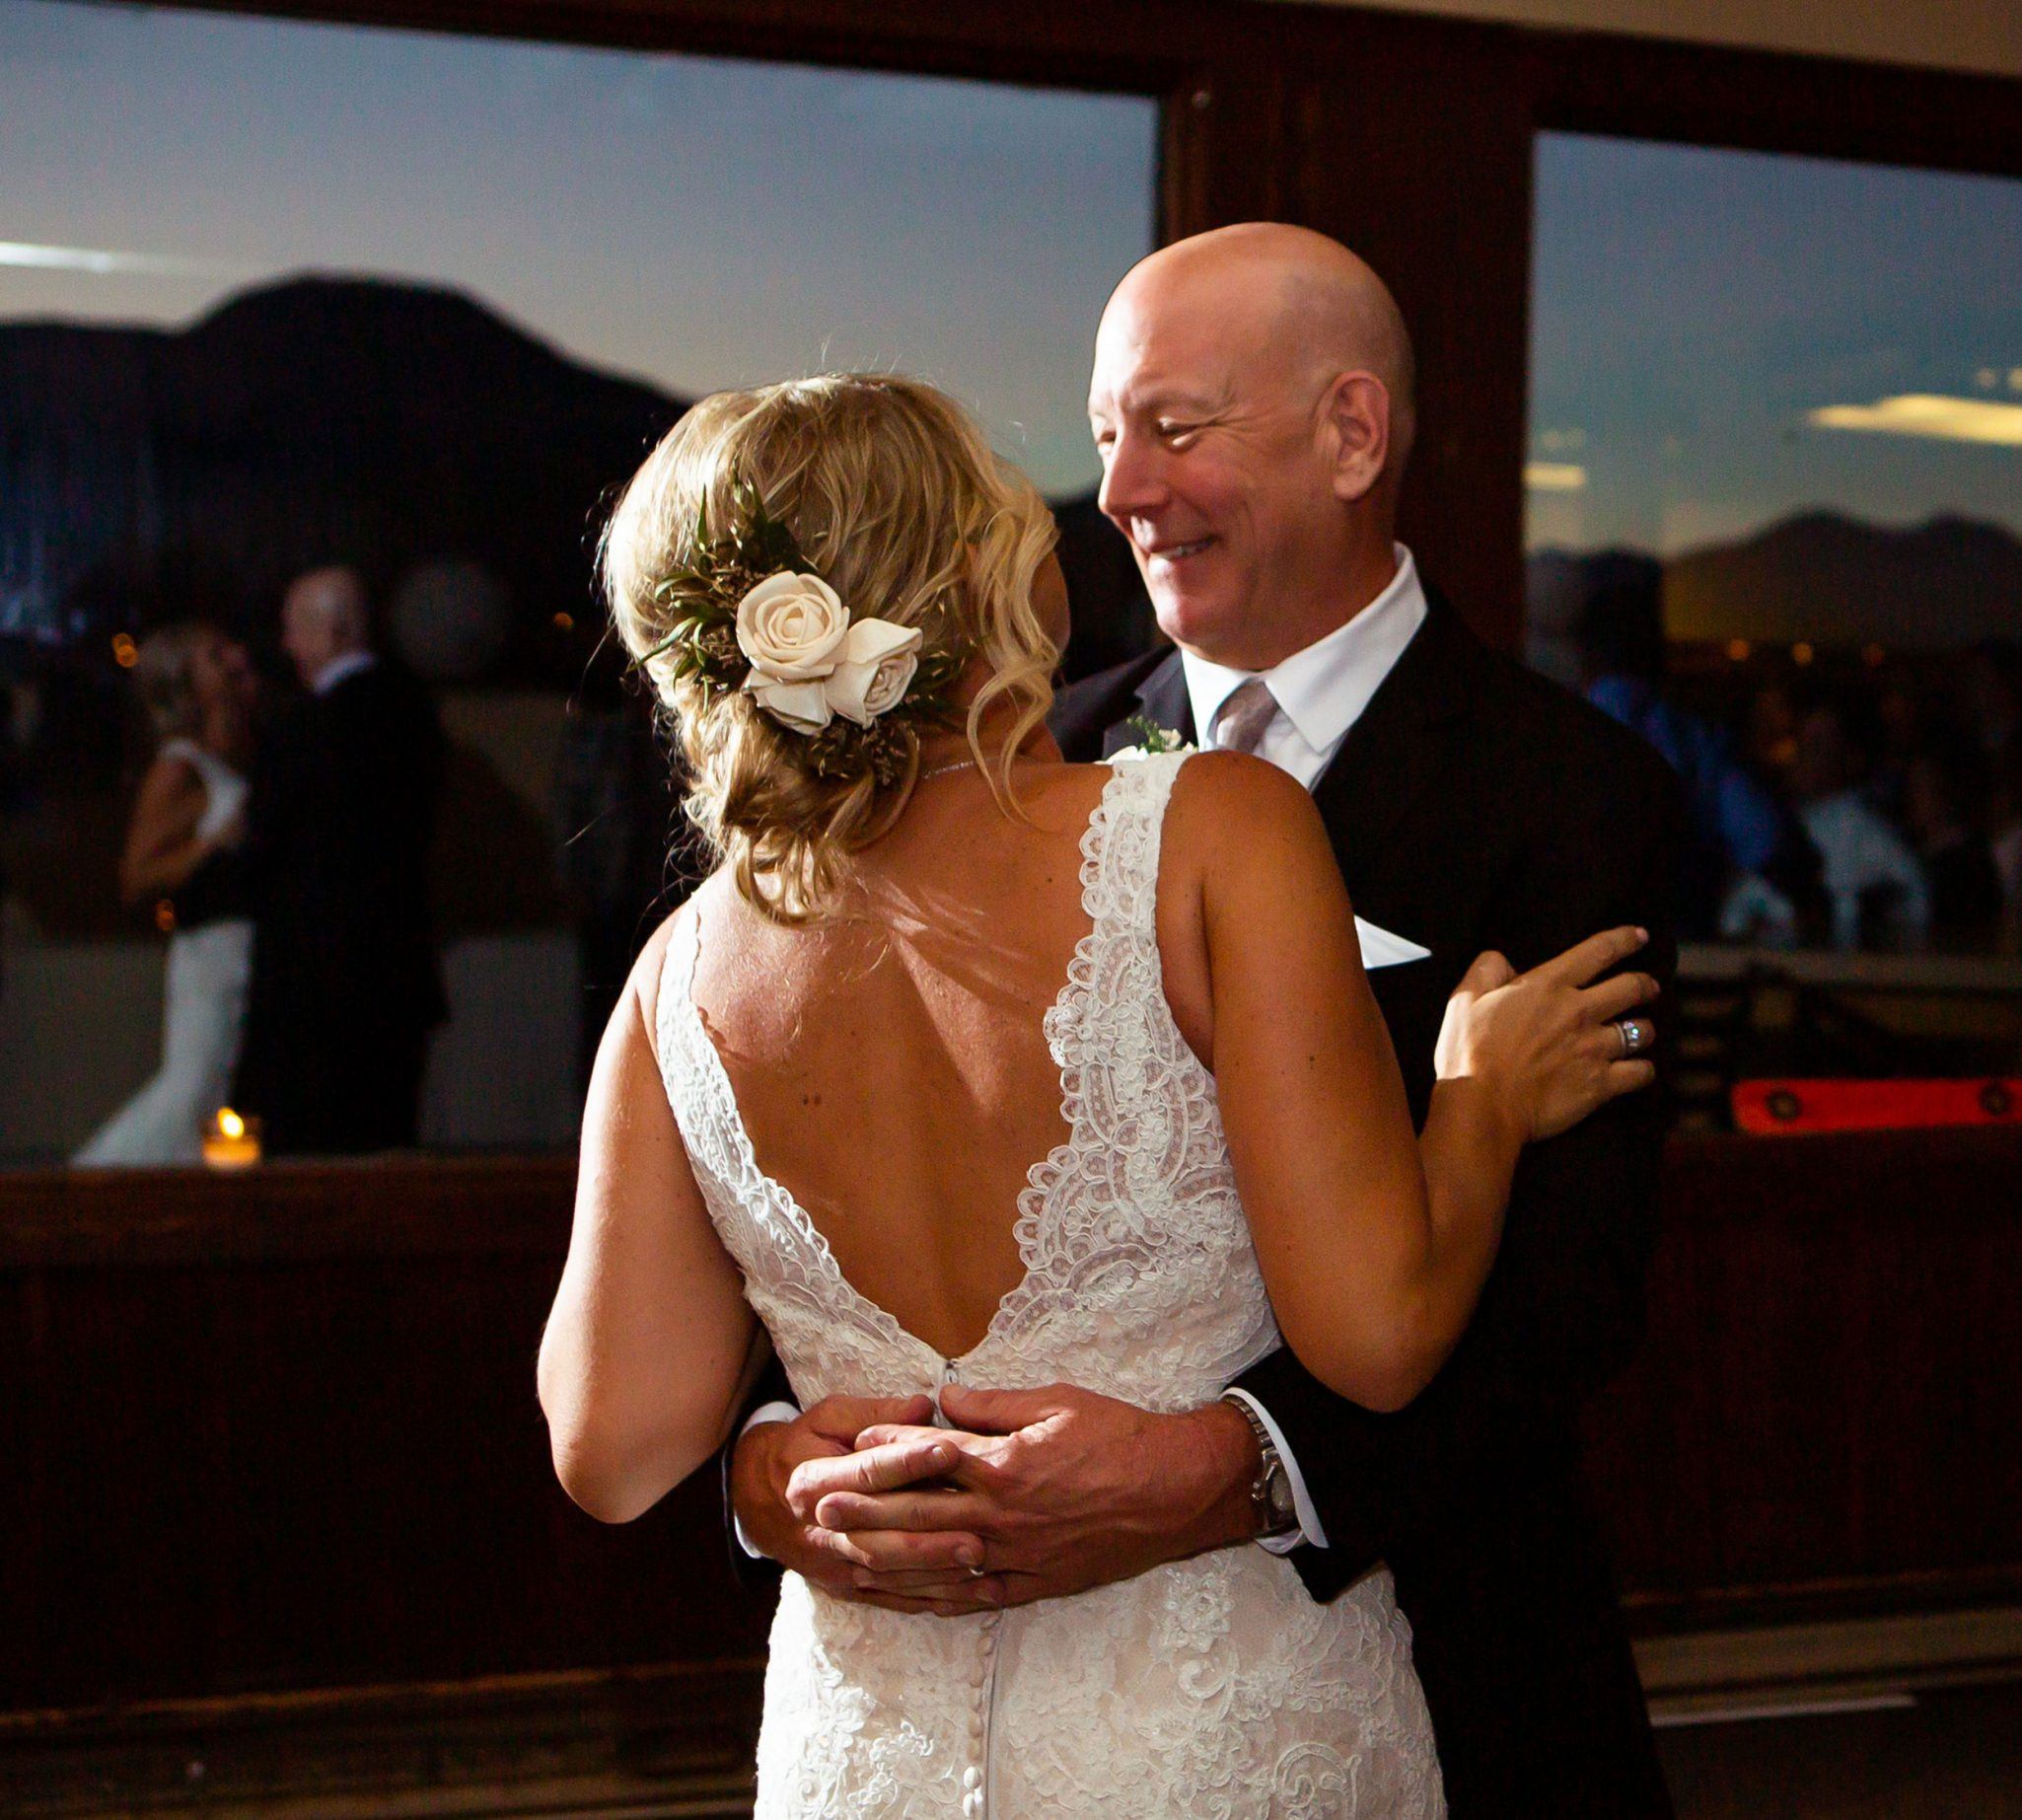 Mountaintop Wedding dance at Purgatory Resort, Durango CO